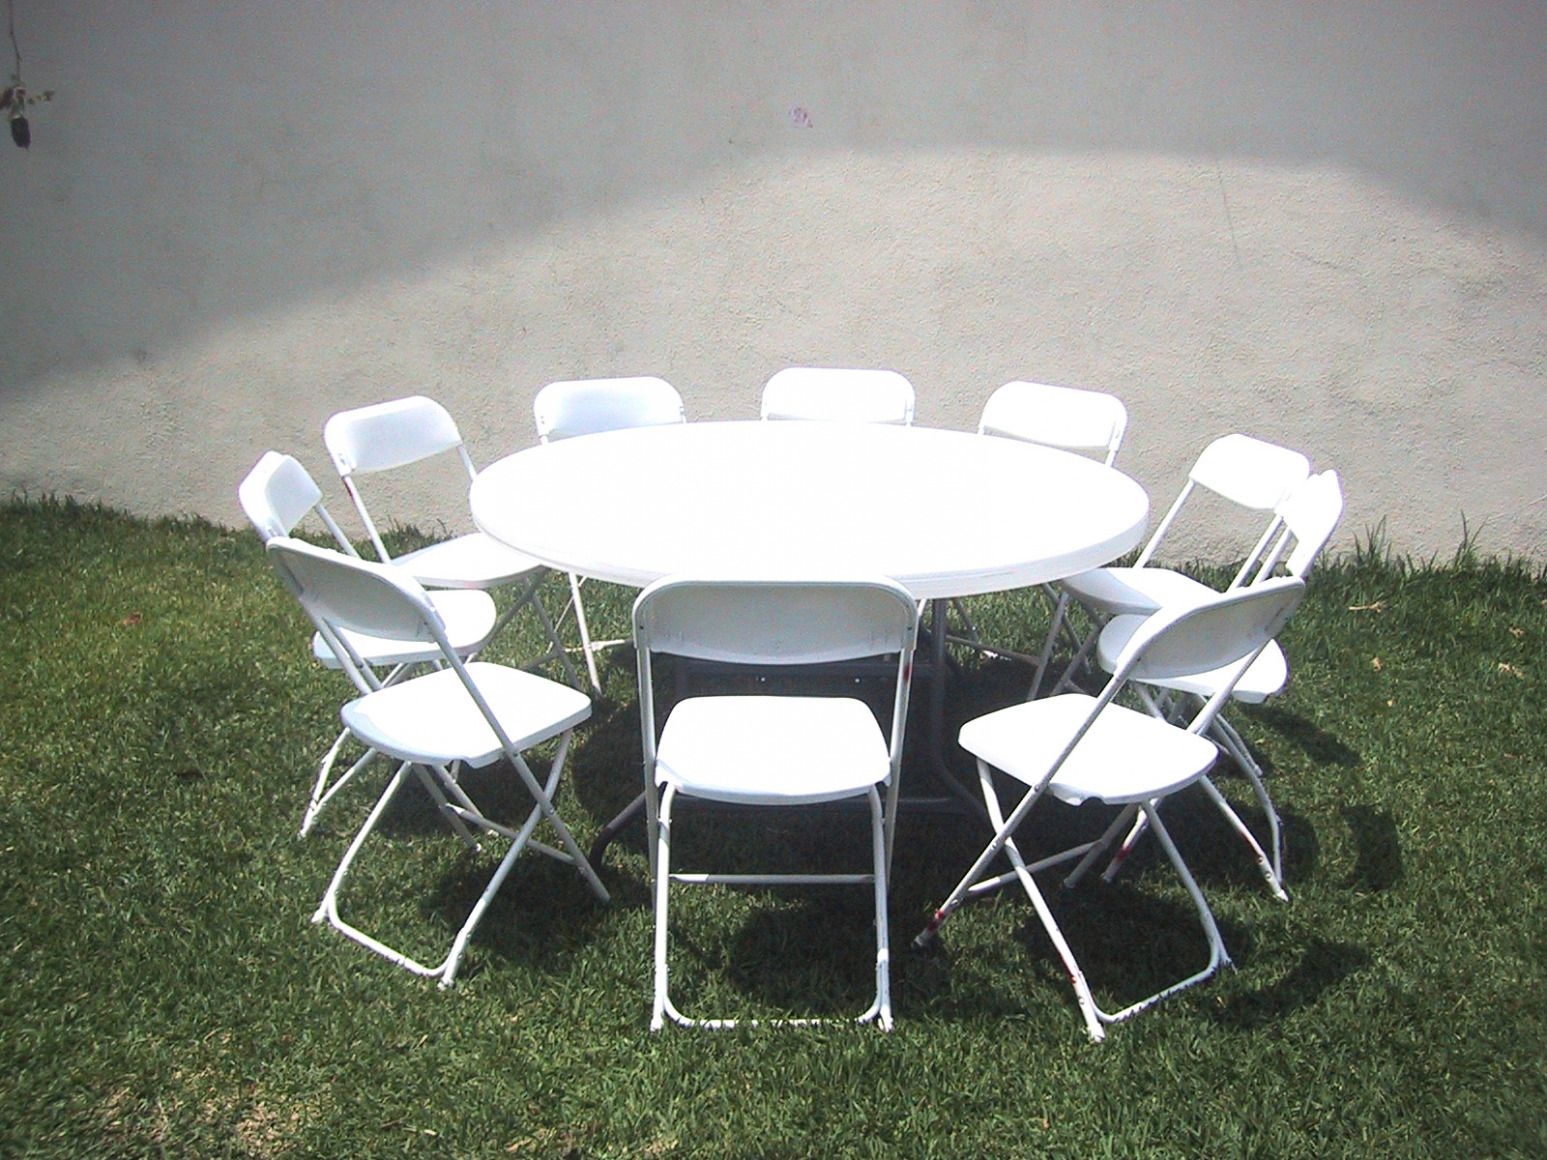 100 Round Party Tables For Sale Best Cheap Modern Furniture Check More At Http Livelylightin Kids Table And Chairs Table And Chairs Rent Tables And Chairs